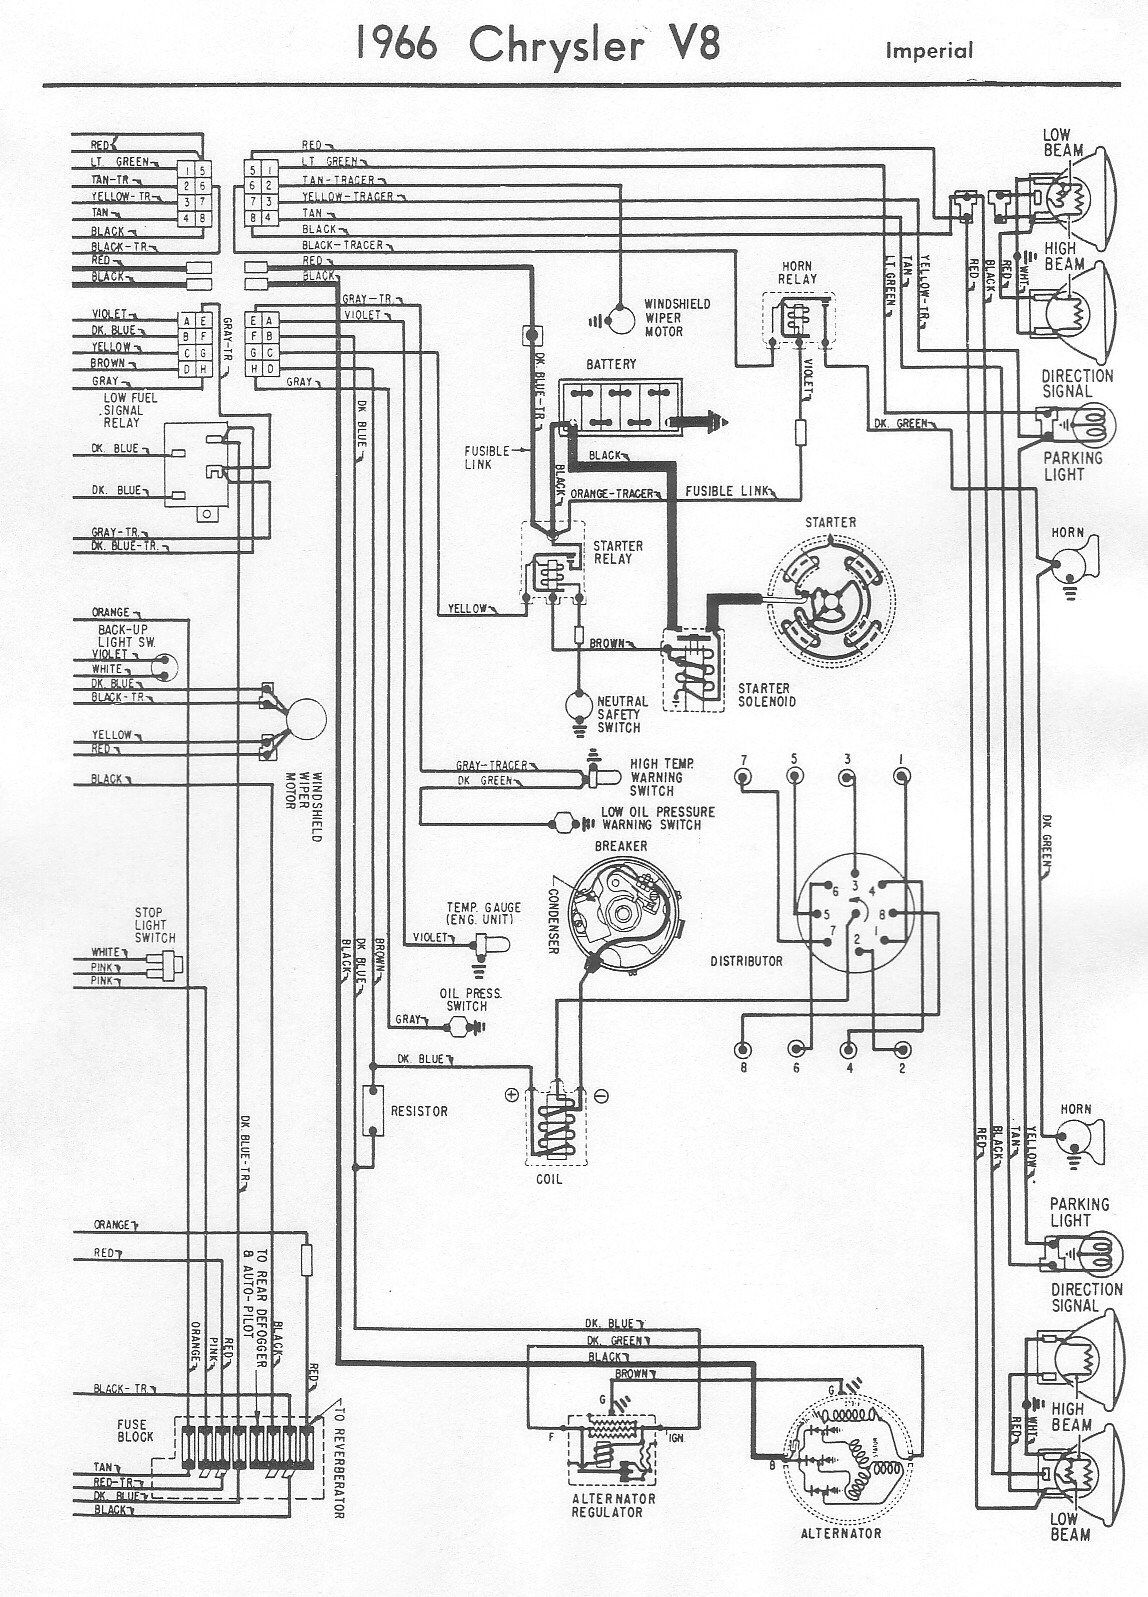 92 Camaro Wiring Diagram - Technical Diagrams on